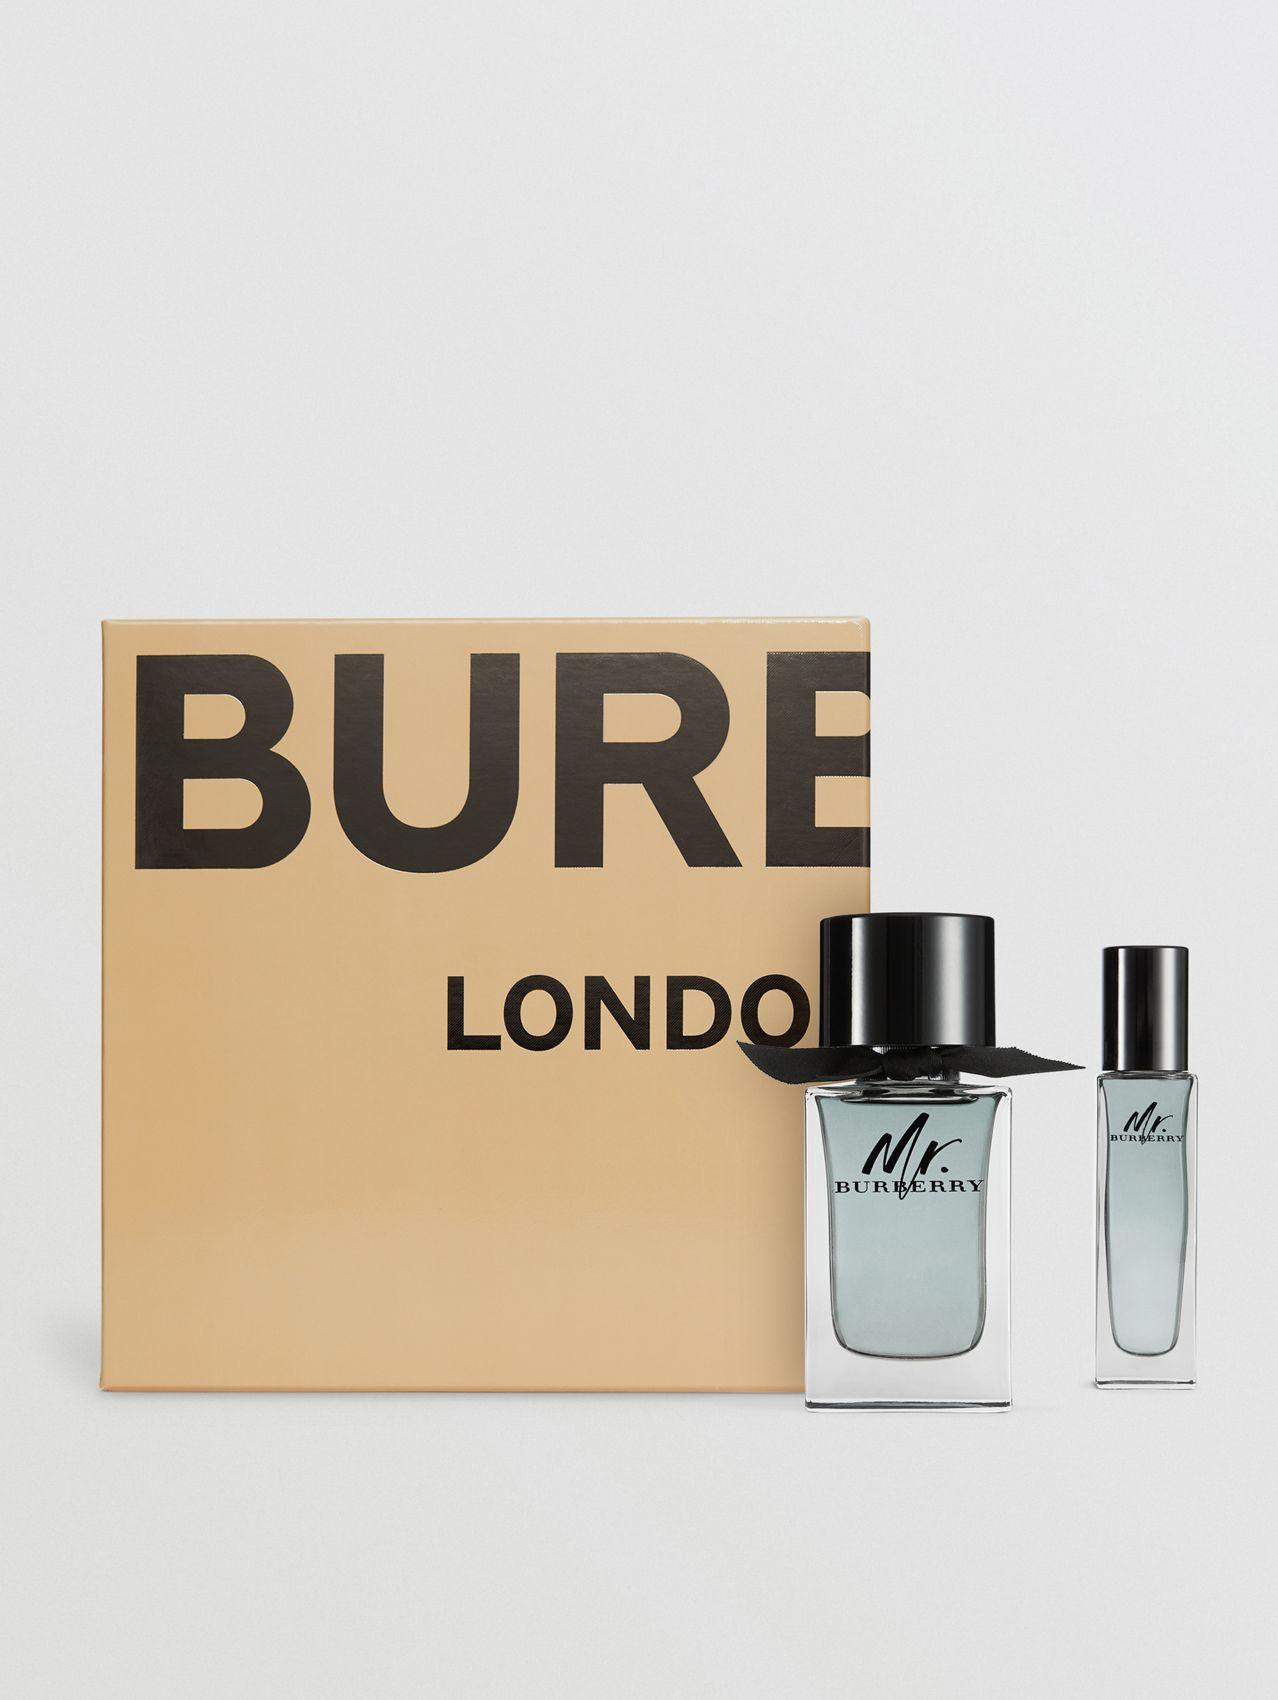 Mr. Burberry Eau de Toilette Gift Set in Honey